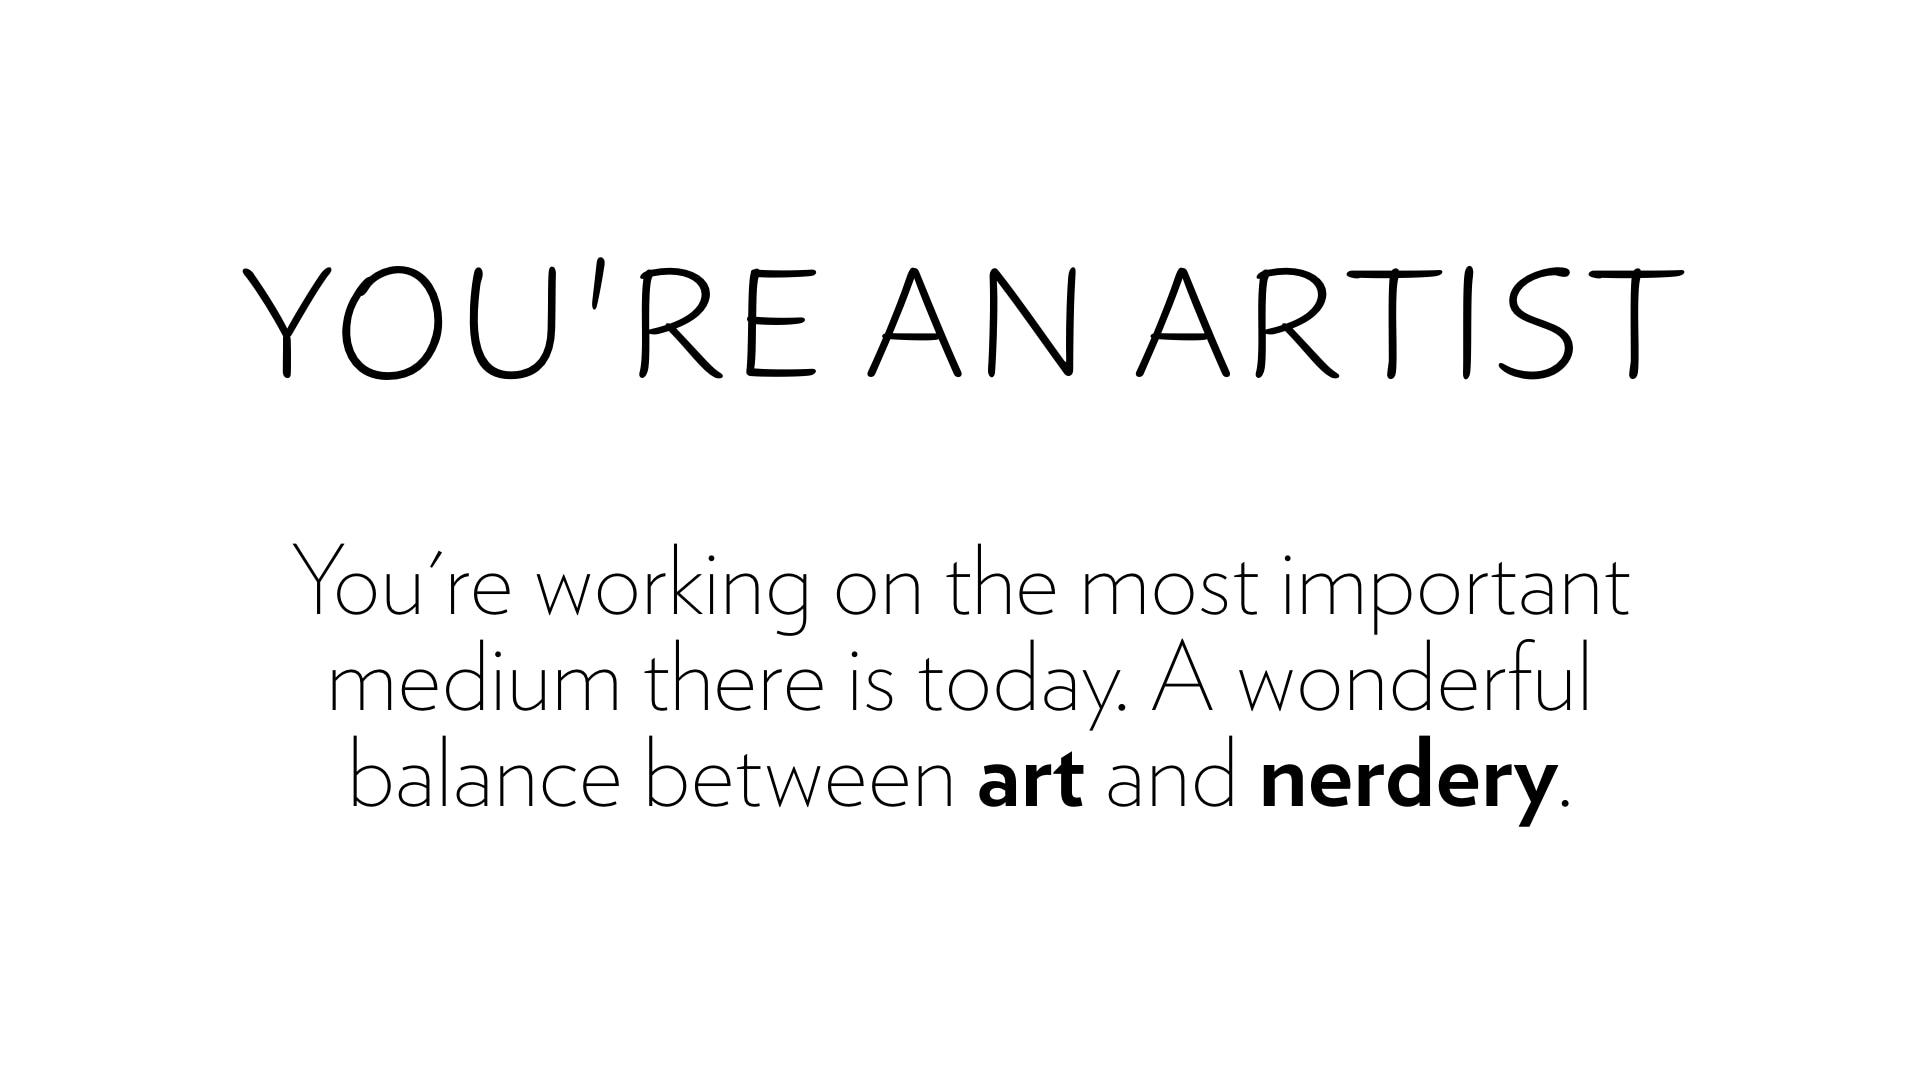 You're an artist. You're working on the most important medium there is today.